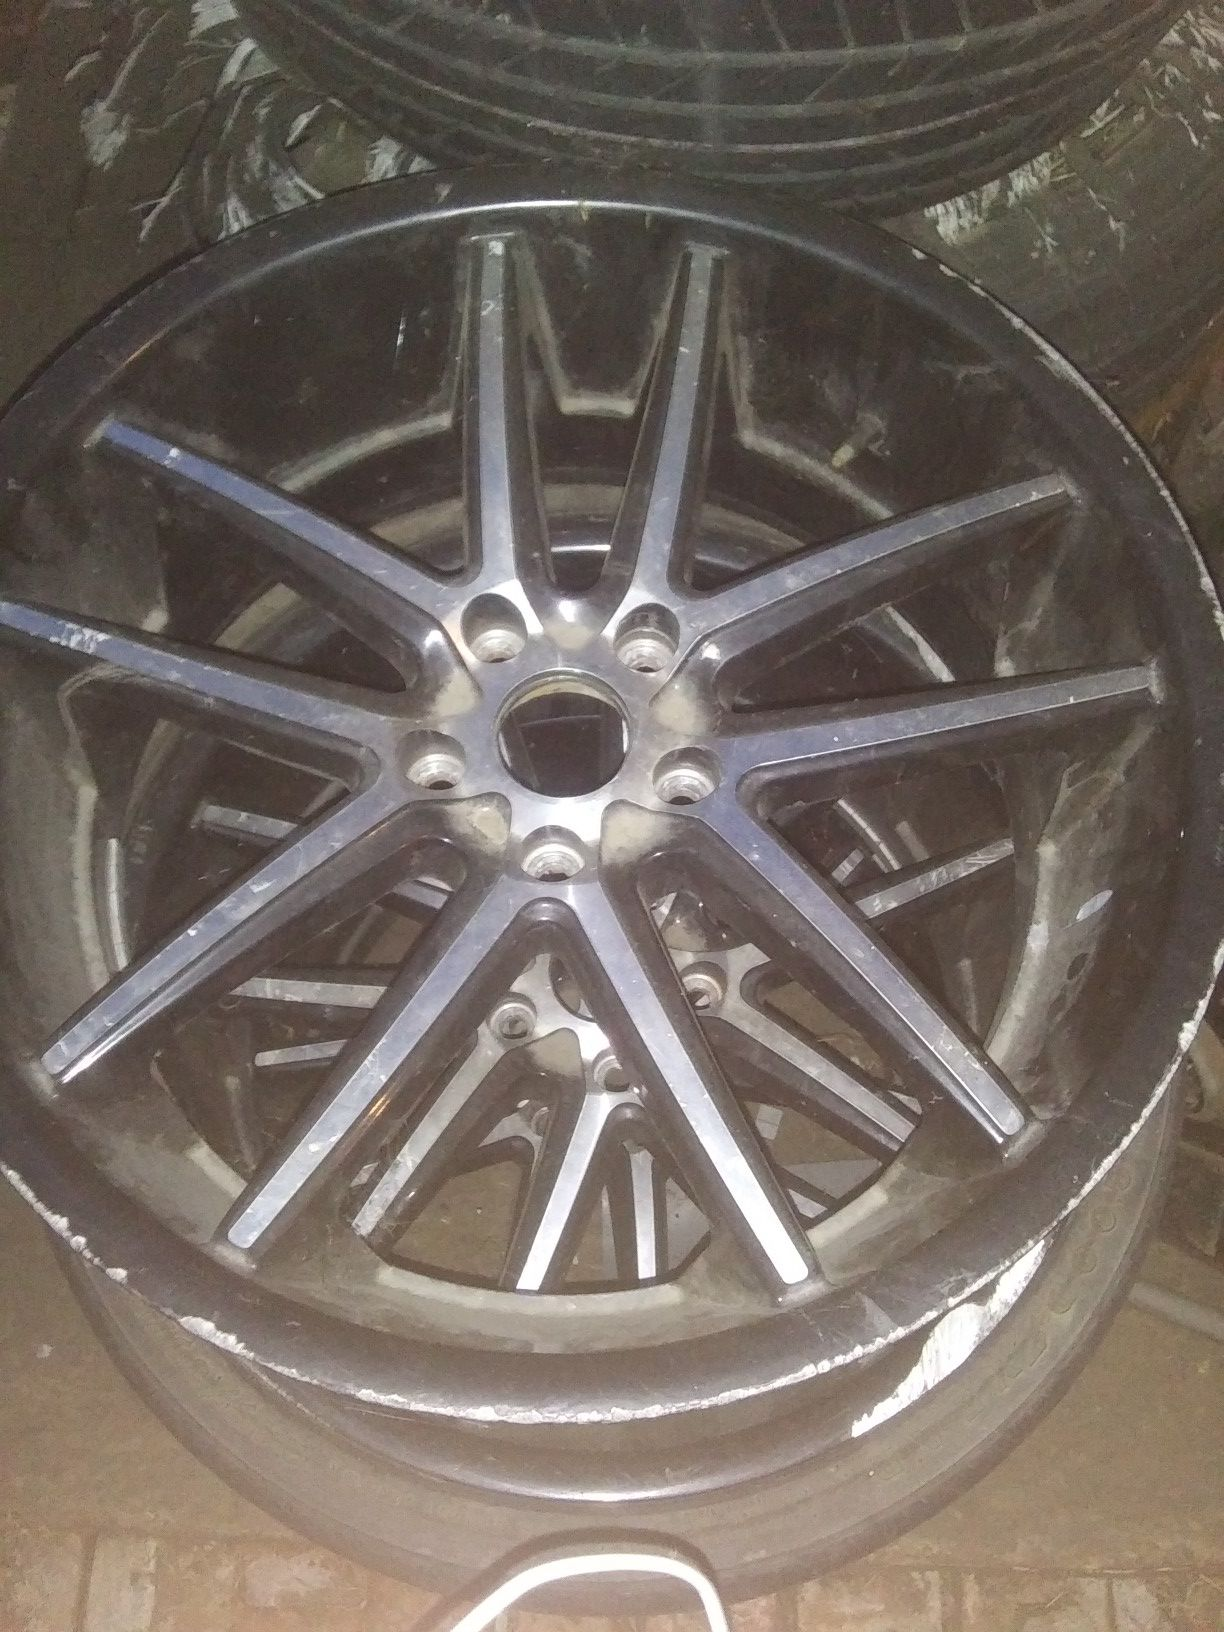 I have 3 of these rims 20 inch all 3 need tires lug pattern 5x114